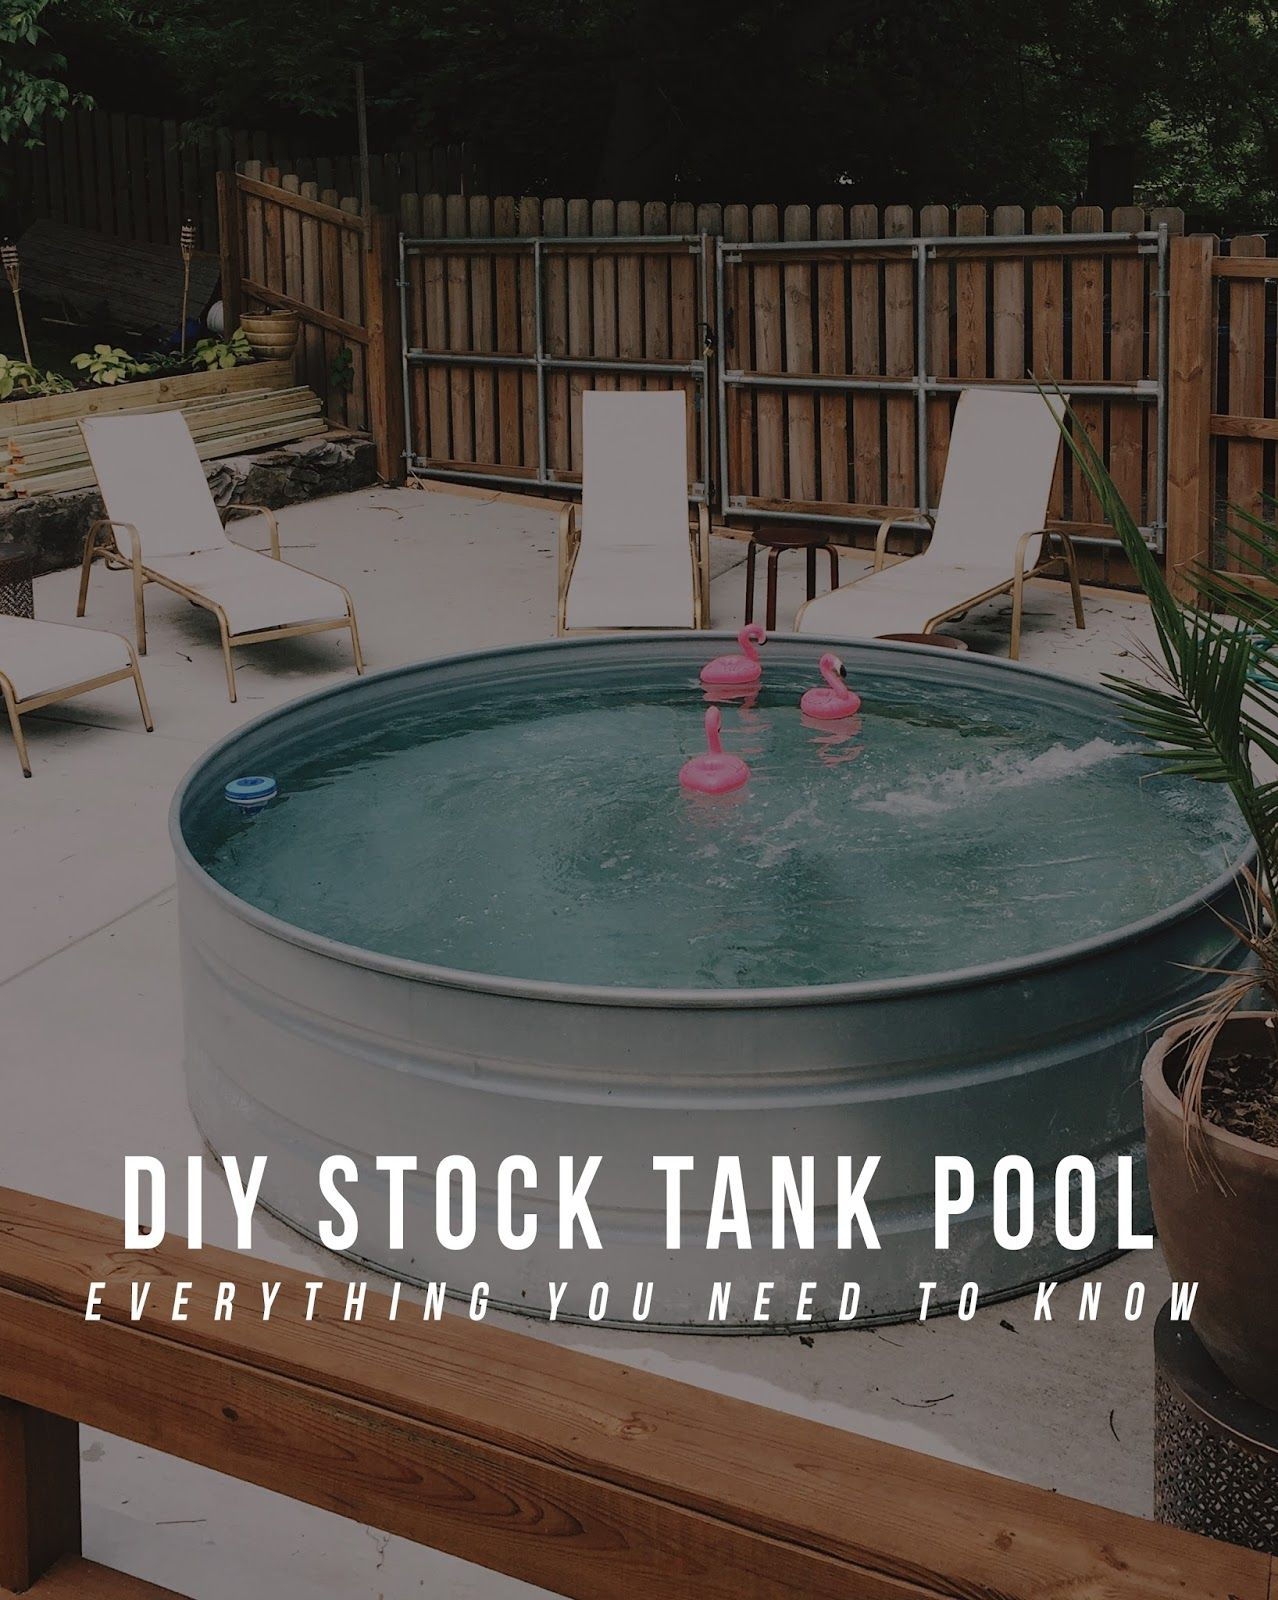 Diy stock tank pool everything you need to know stock for Diy garden pool